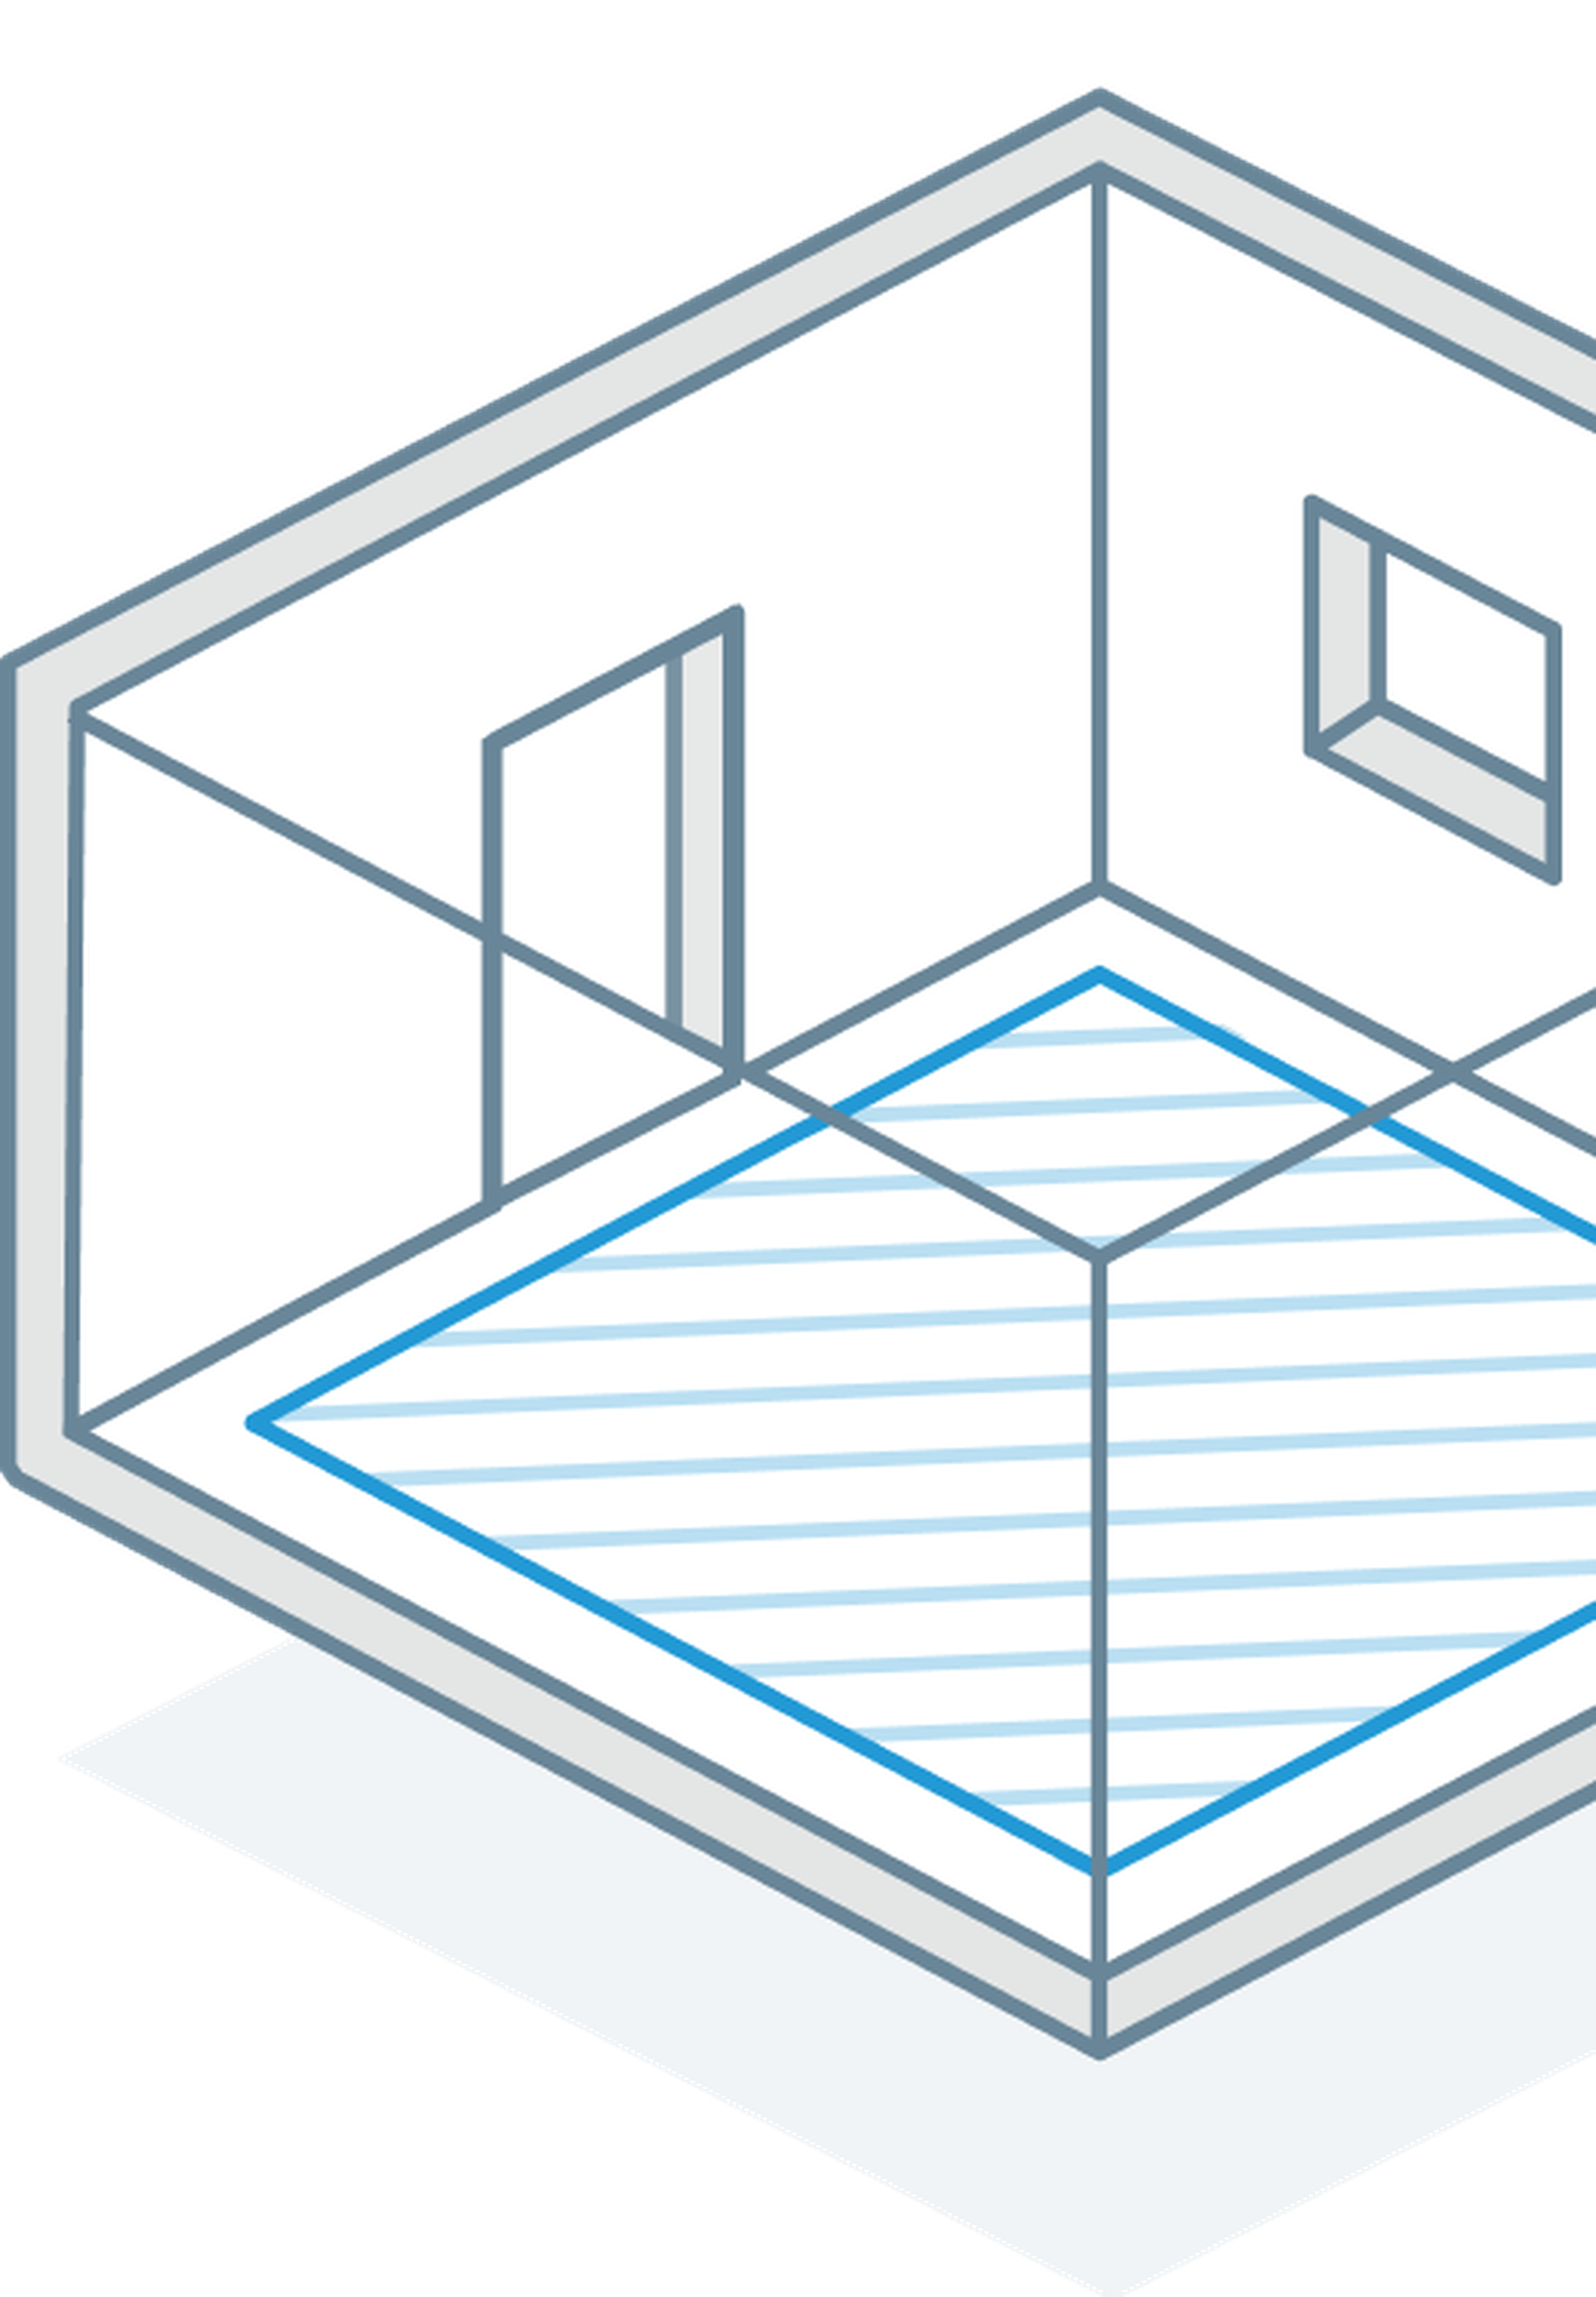 Autodesk Takeoff isometric drawing of construction quantification.